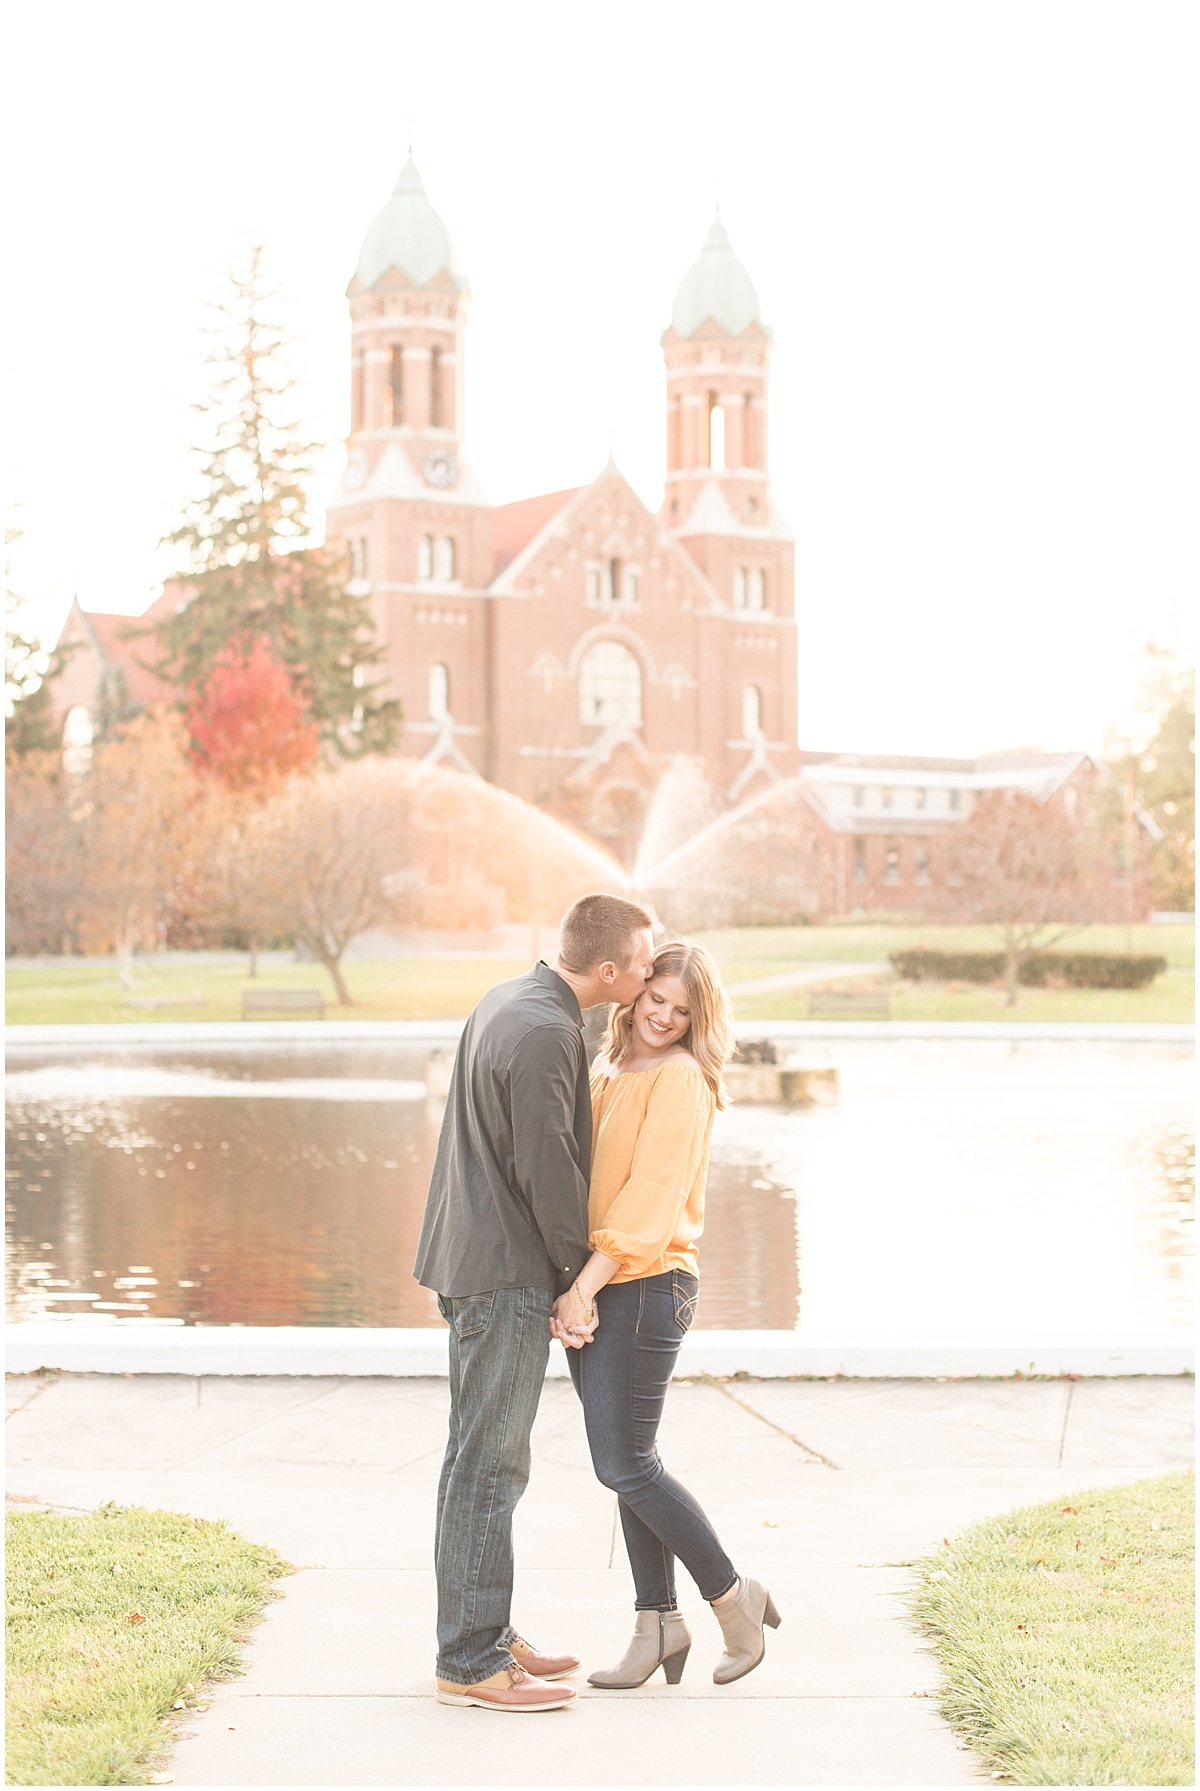 Bruce Anderson and Becky Wisniewski's Engagement Photos at Saint Joseph's College in Rensselaer, Indiana by Victoria Rayburn